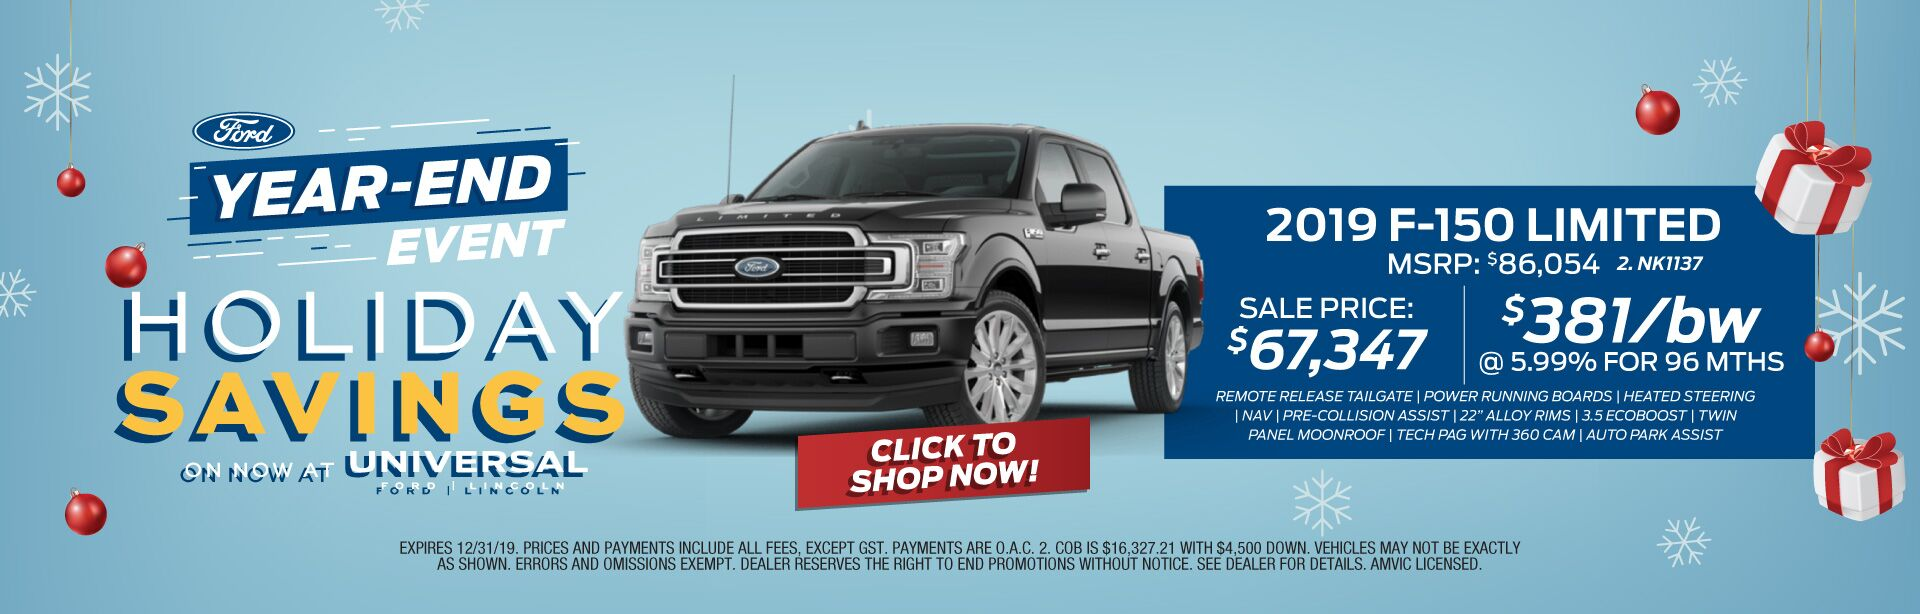 Year-End Event - Holiday Savings F-150 Limited